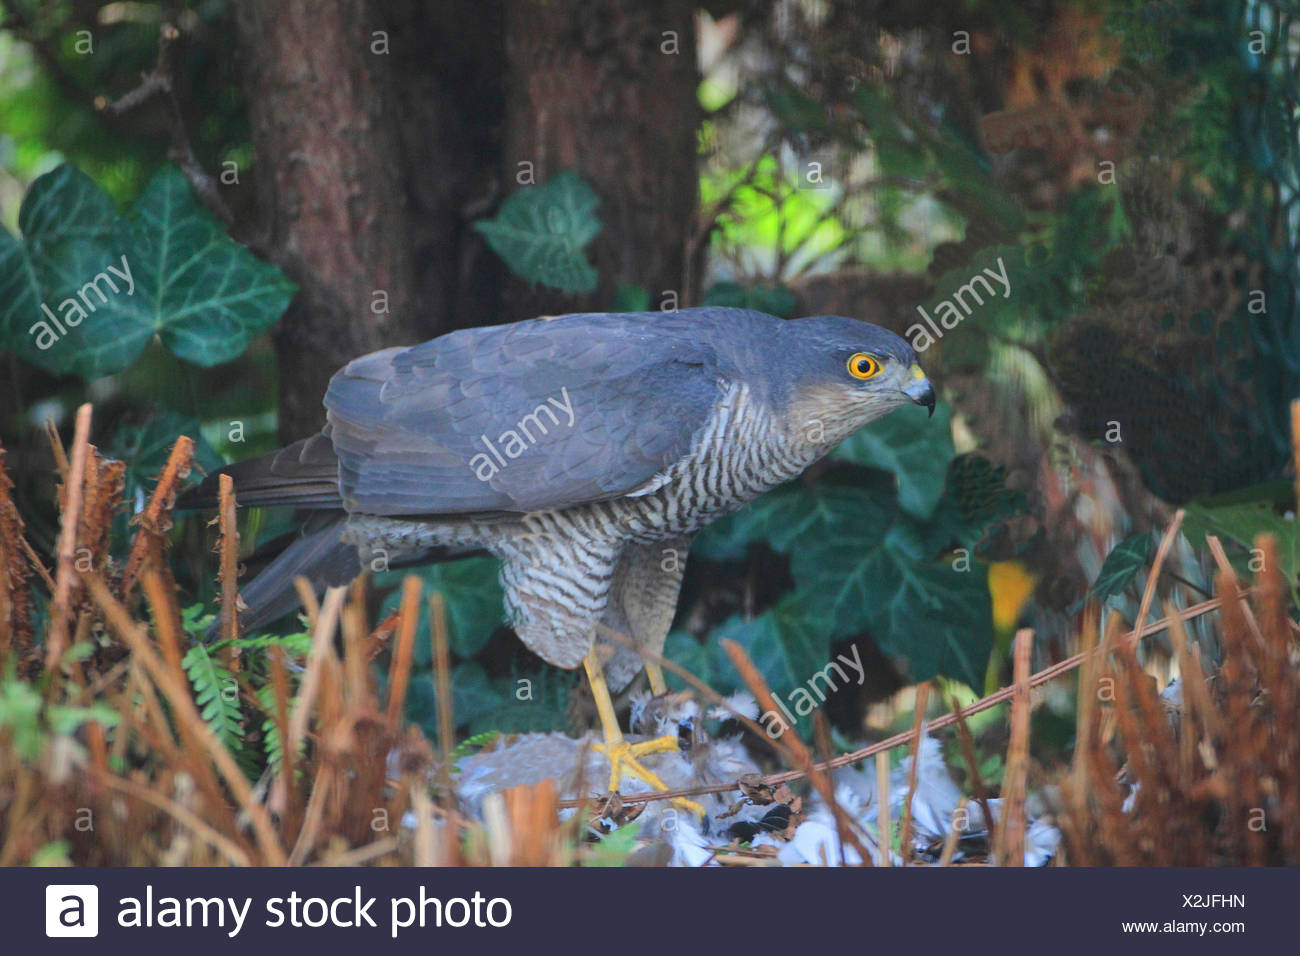 northern sparrow hawk (Accipiter nisus), picks a dove, Germany - Stock Image